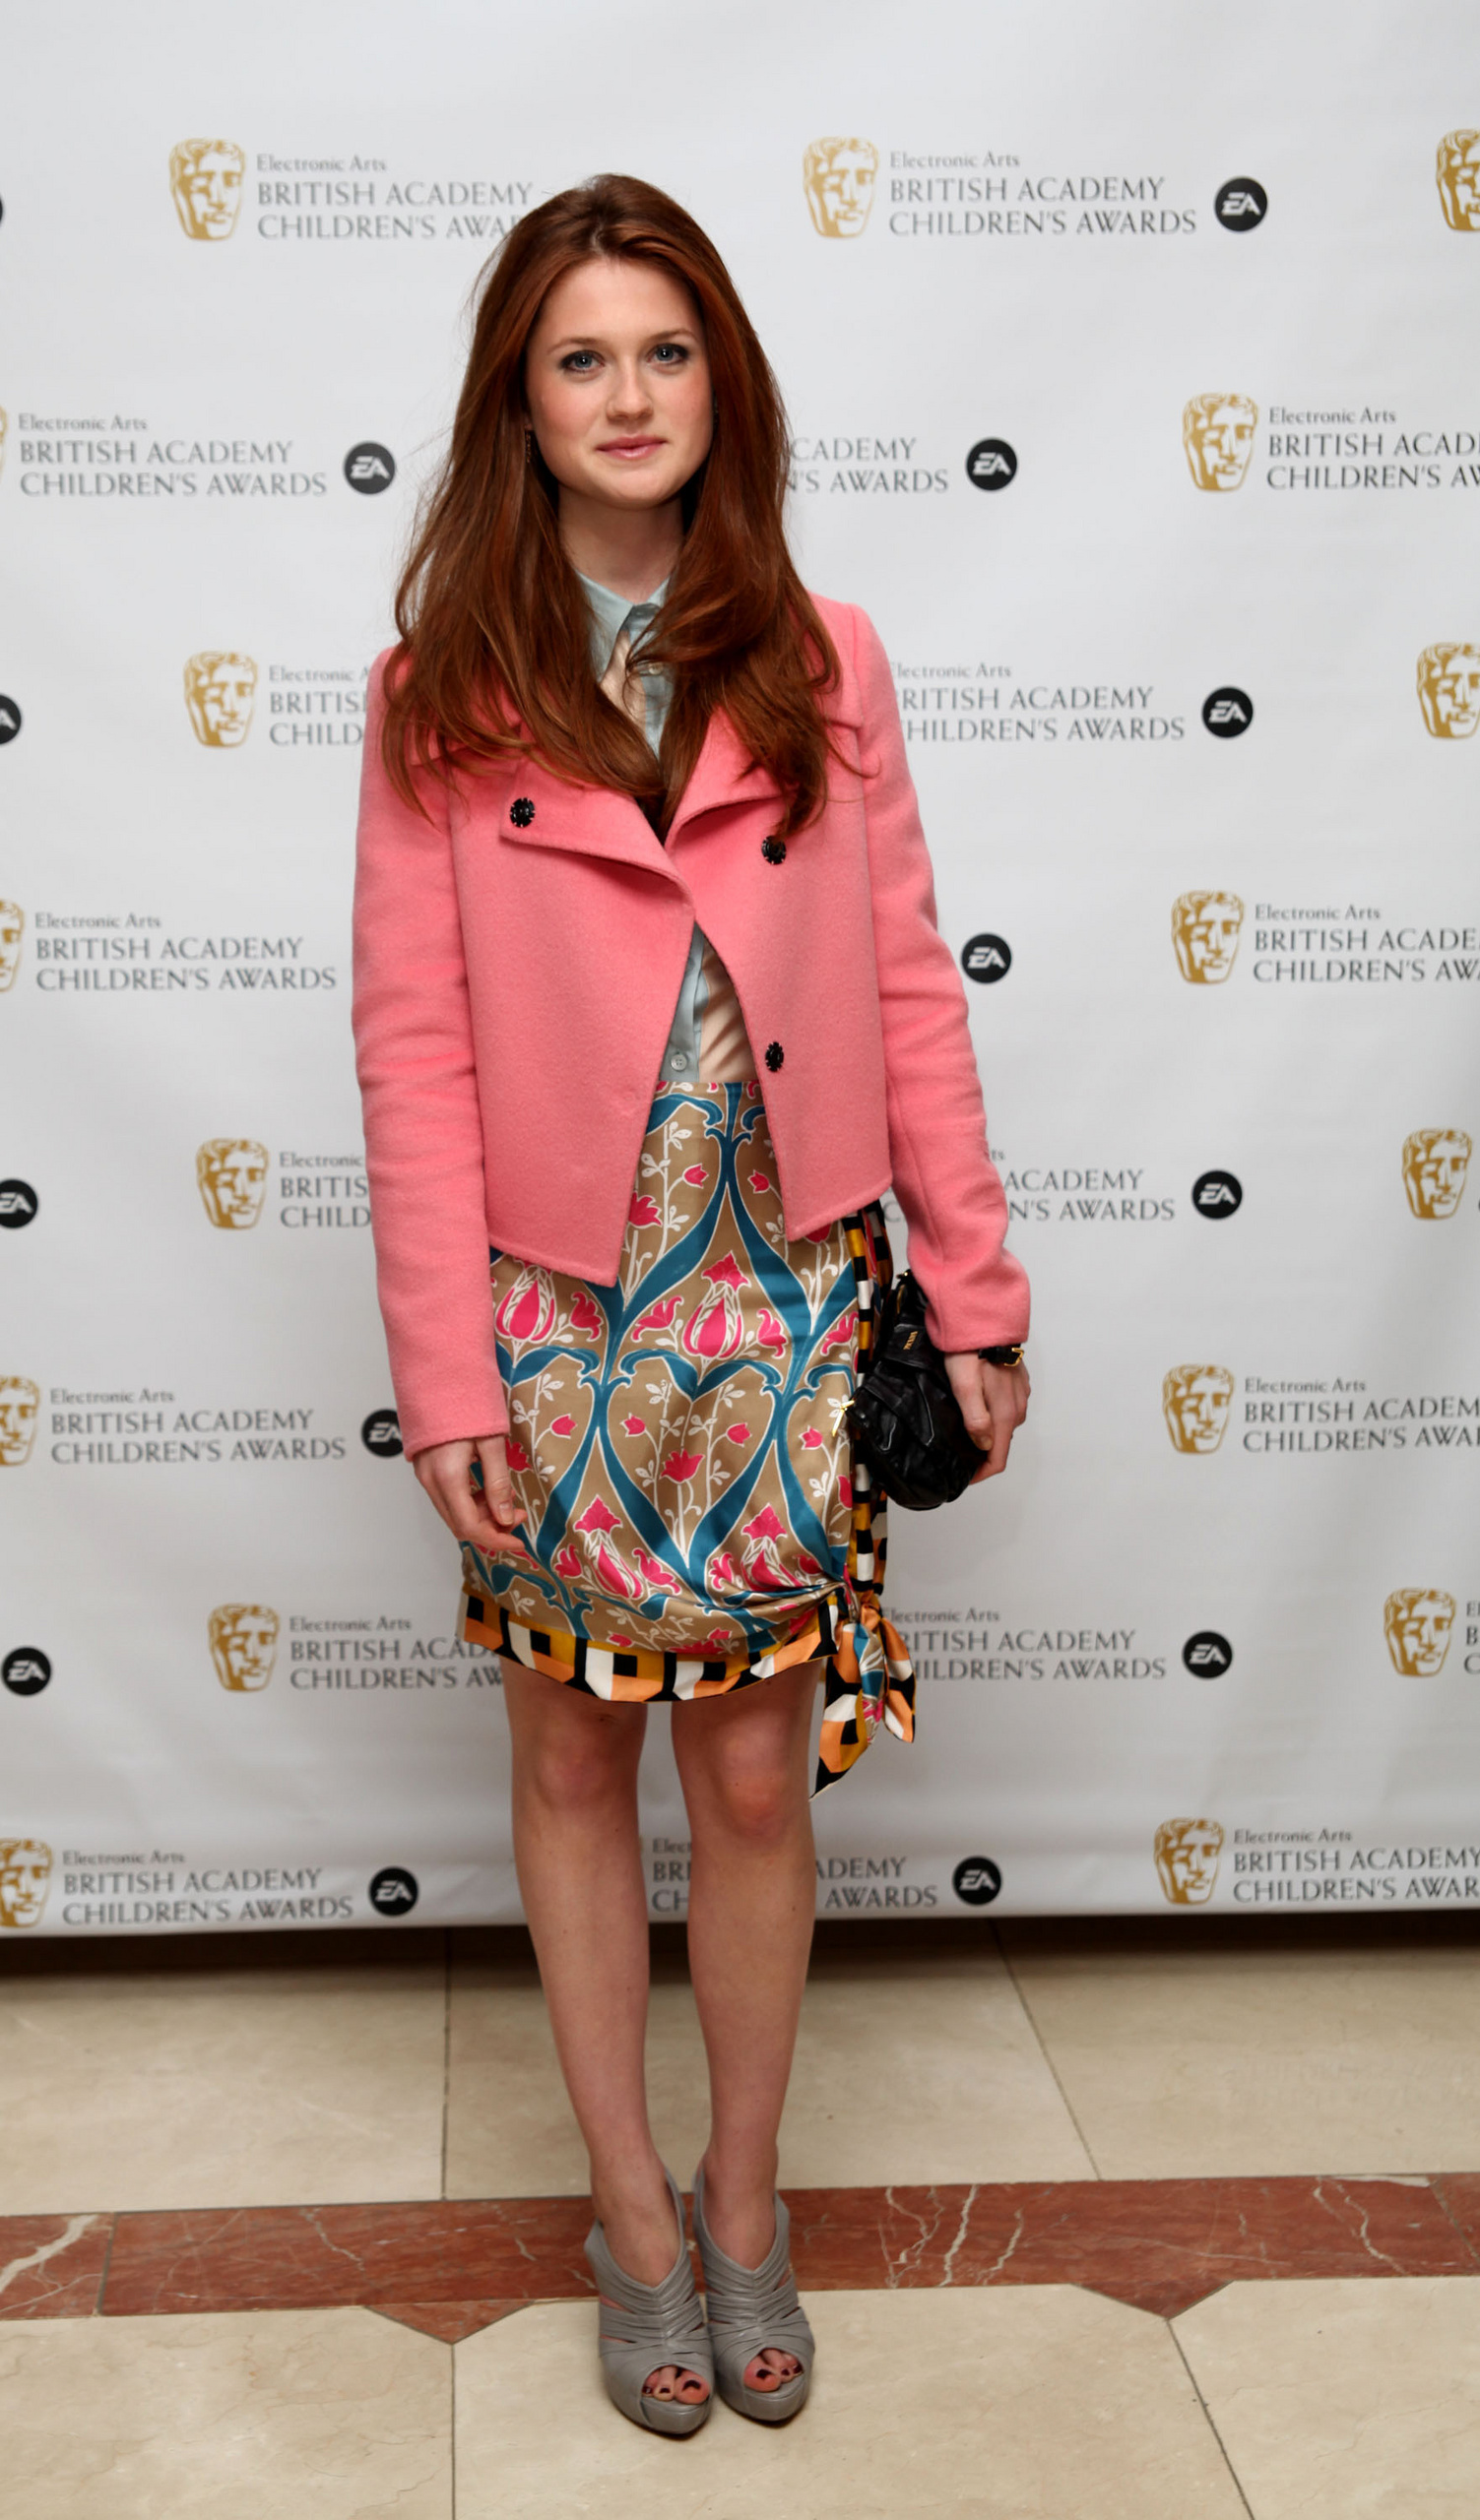 Children's BAFTA 2009 - bonnie-wright photo